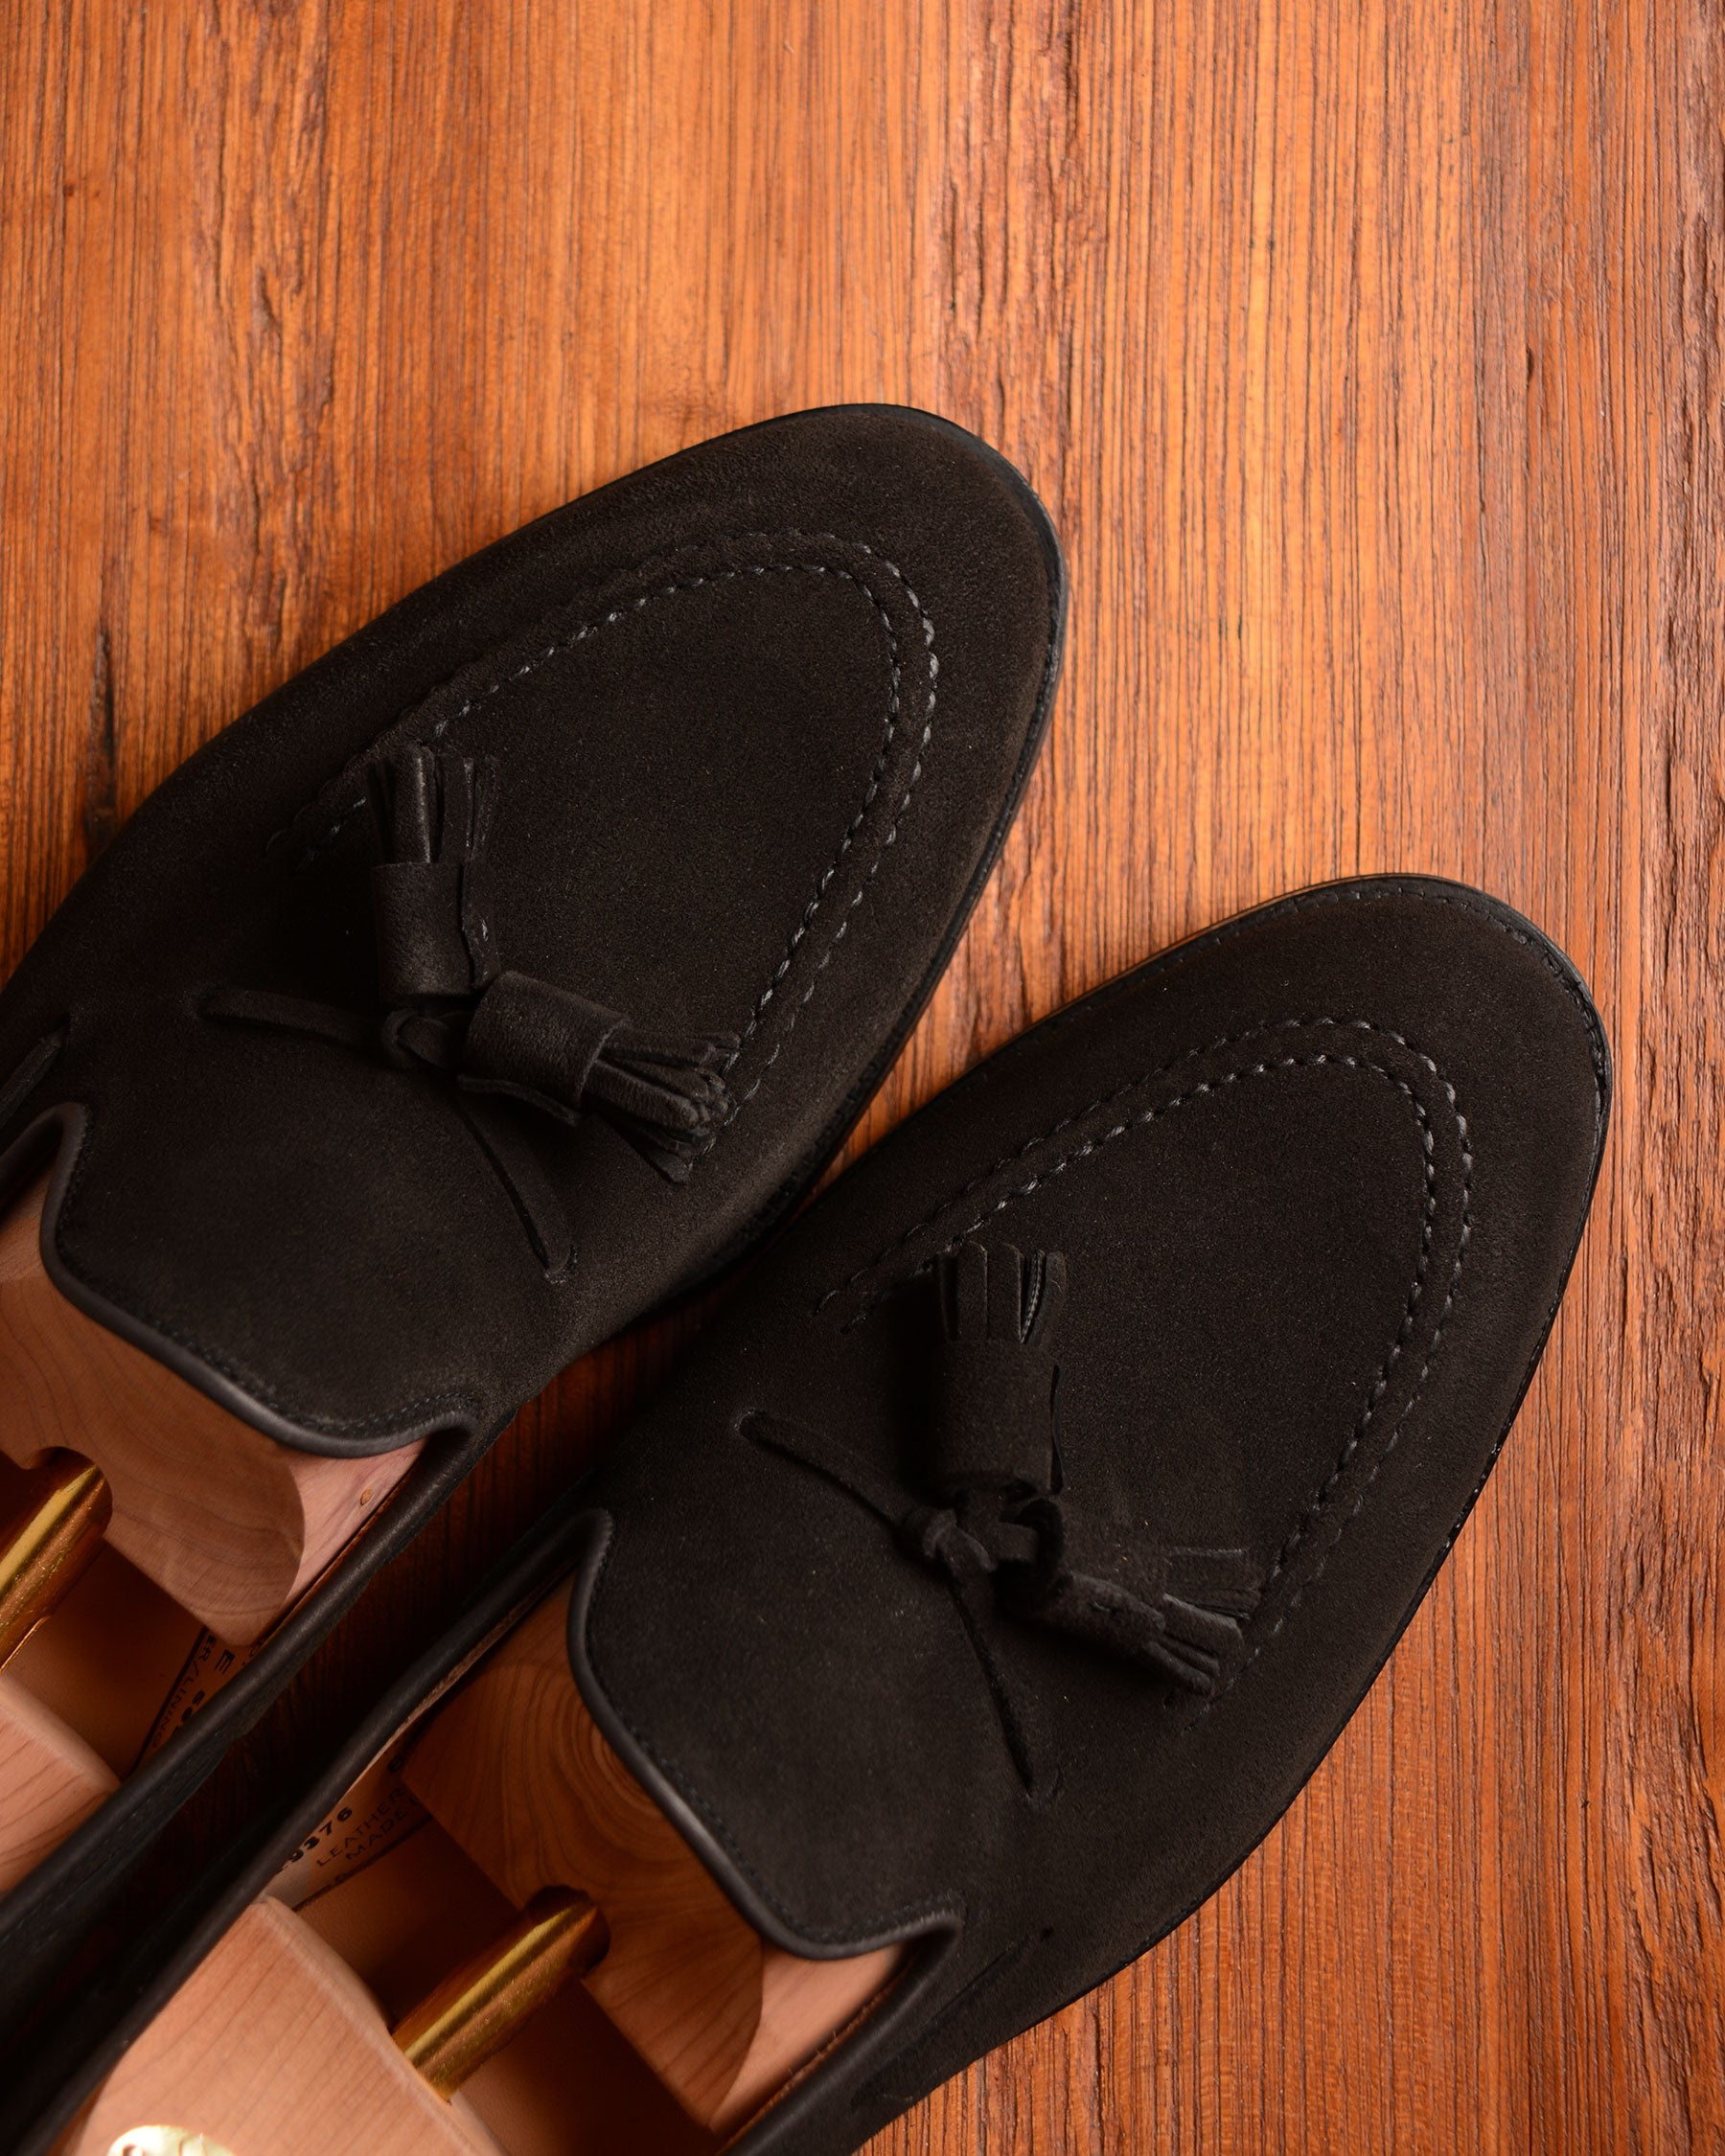 Crockett & Jones Cavendish - Black Suede